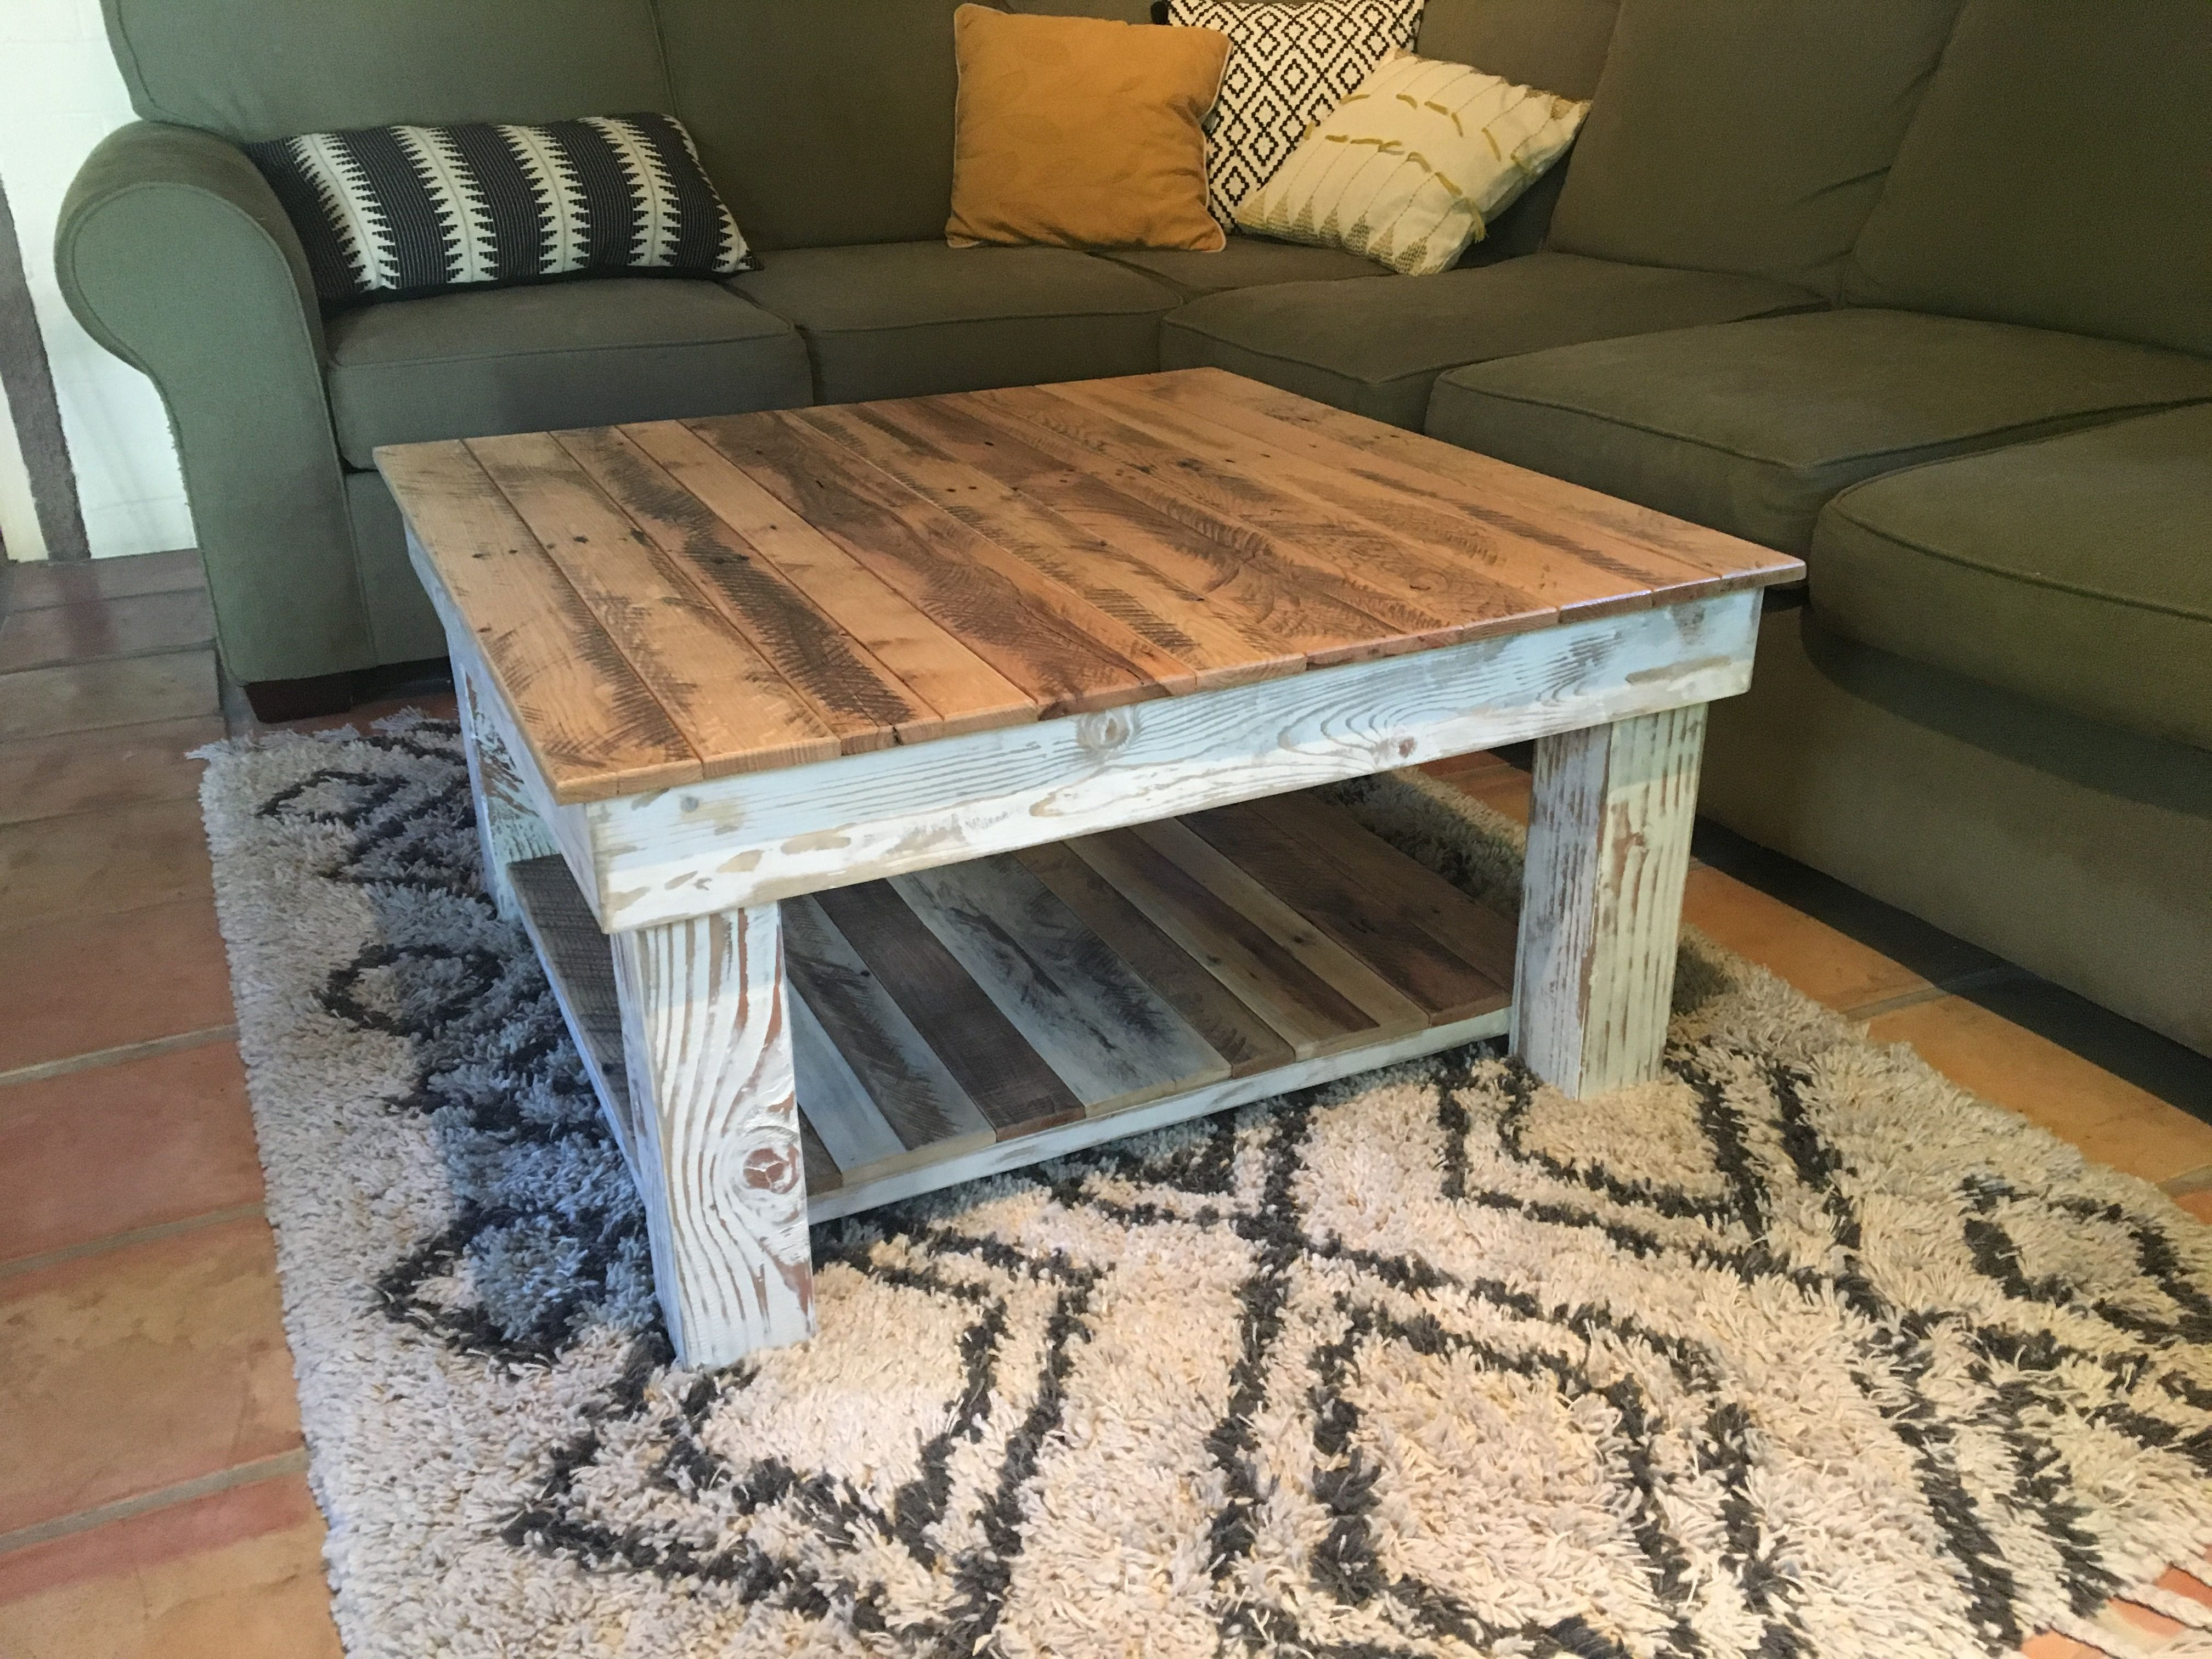 Handmade Reclaimed Wood Rustic Coffee Table By A M Abbott